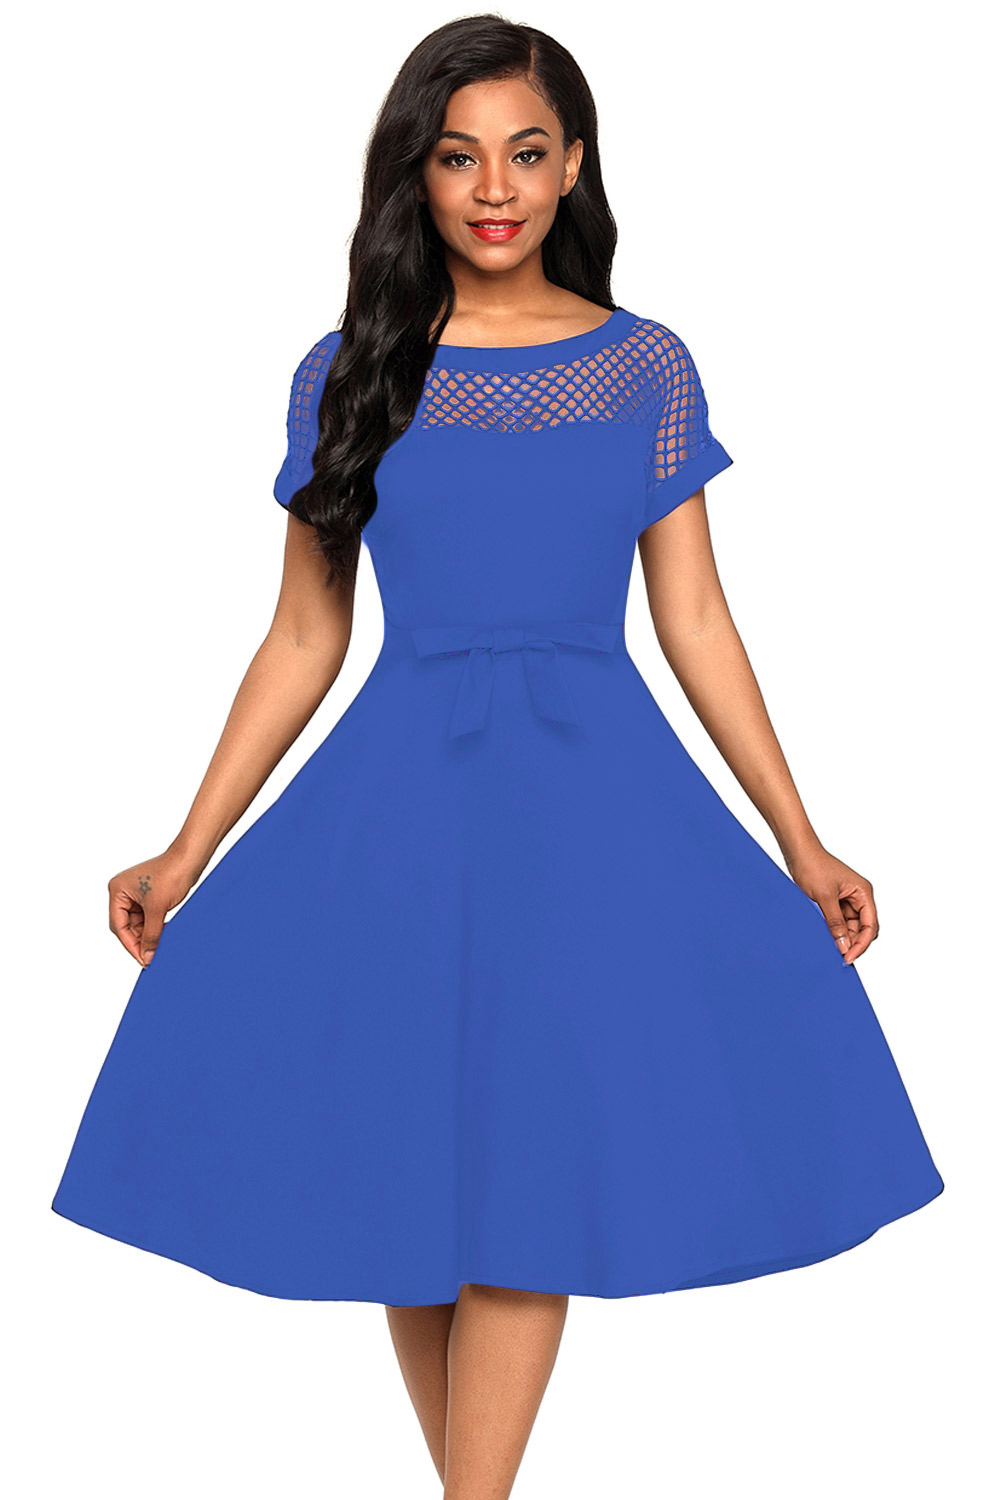 Fishnet Insert Blue Bowknot Embellished Dress